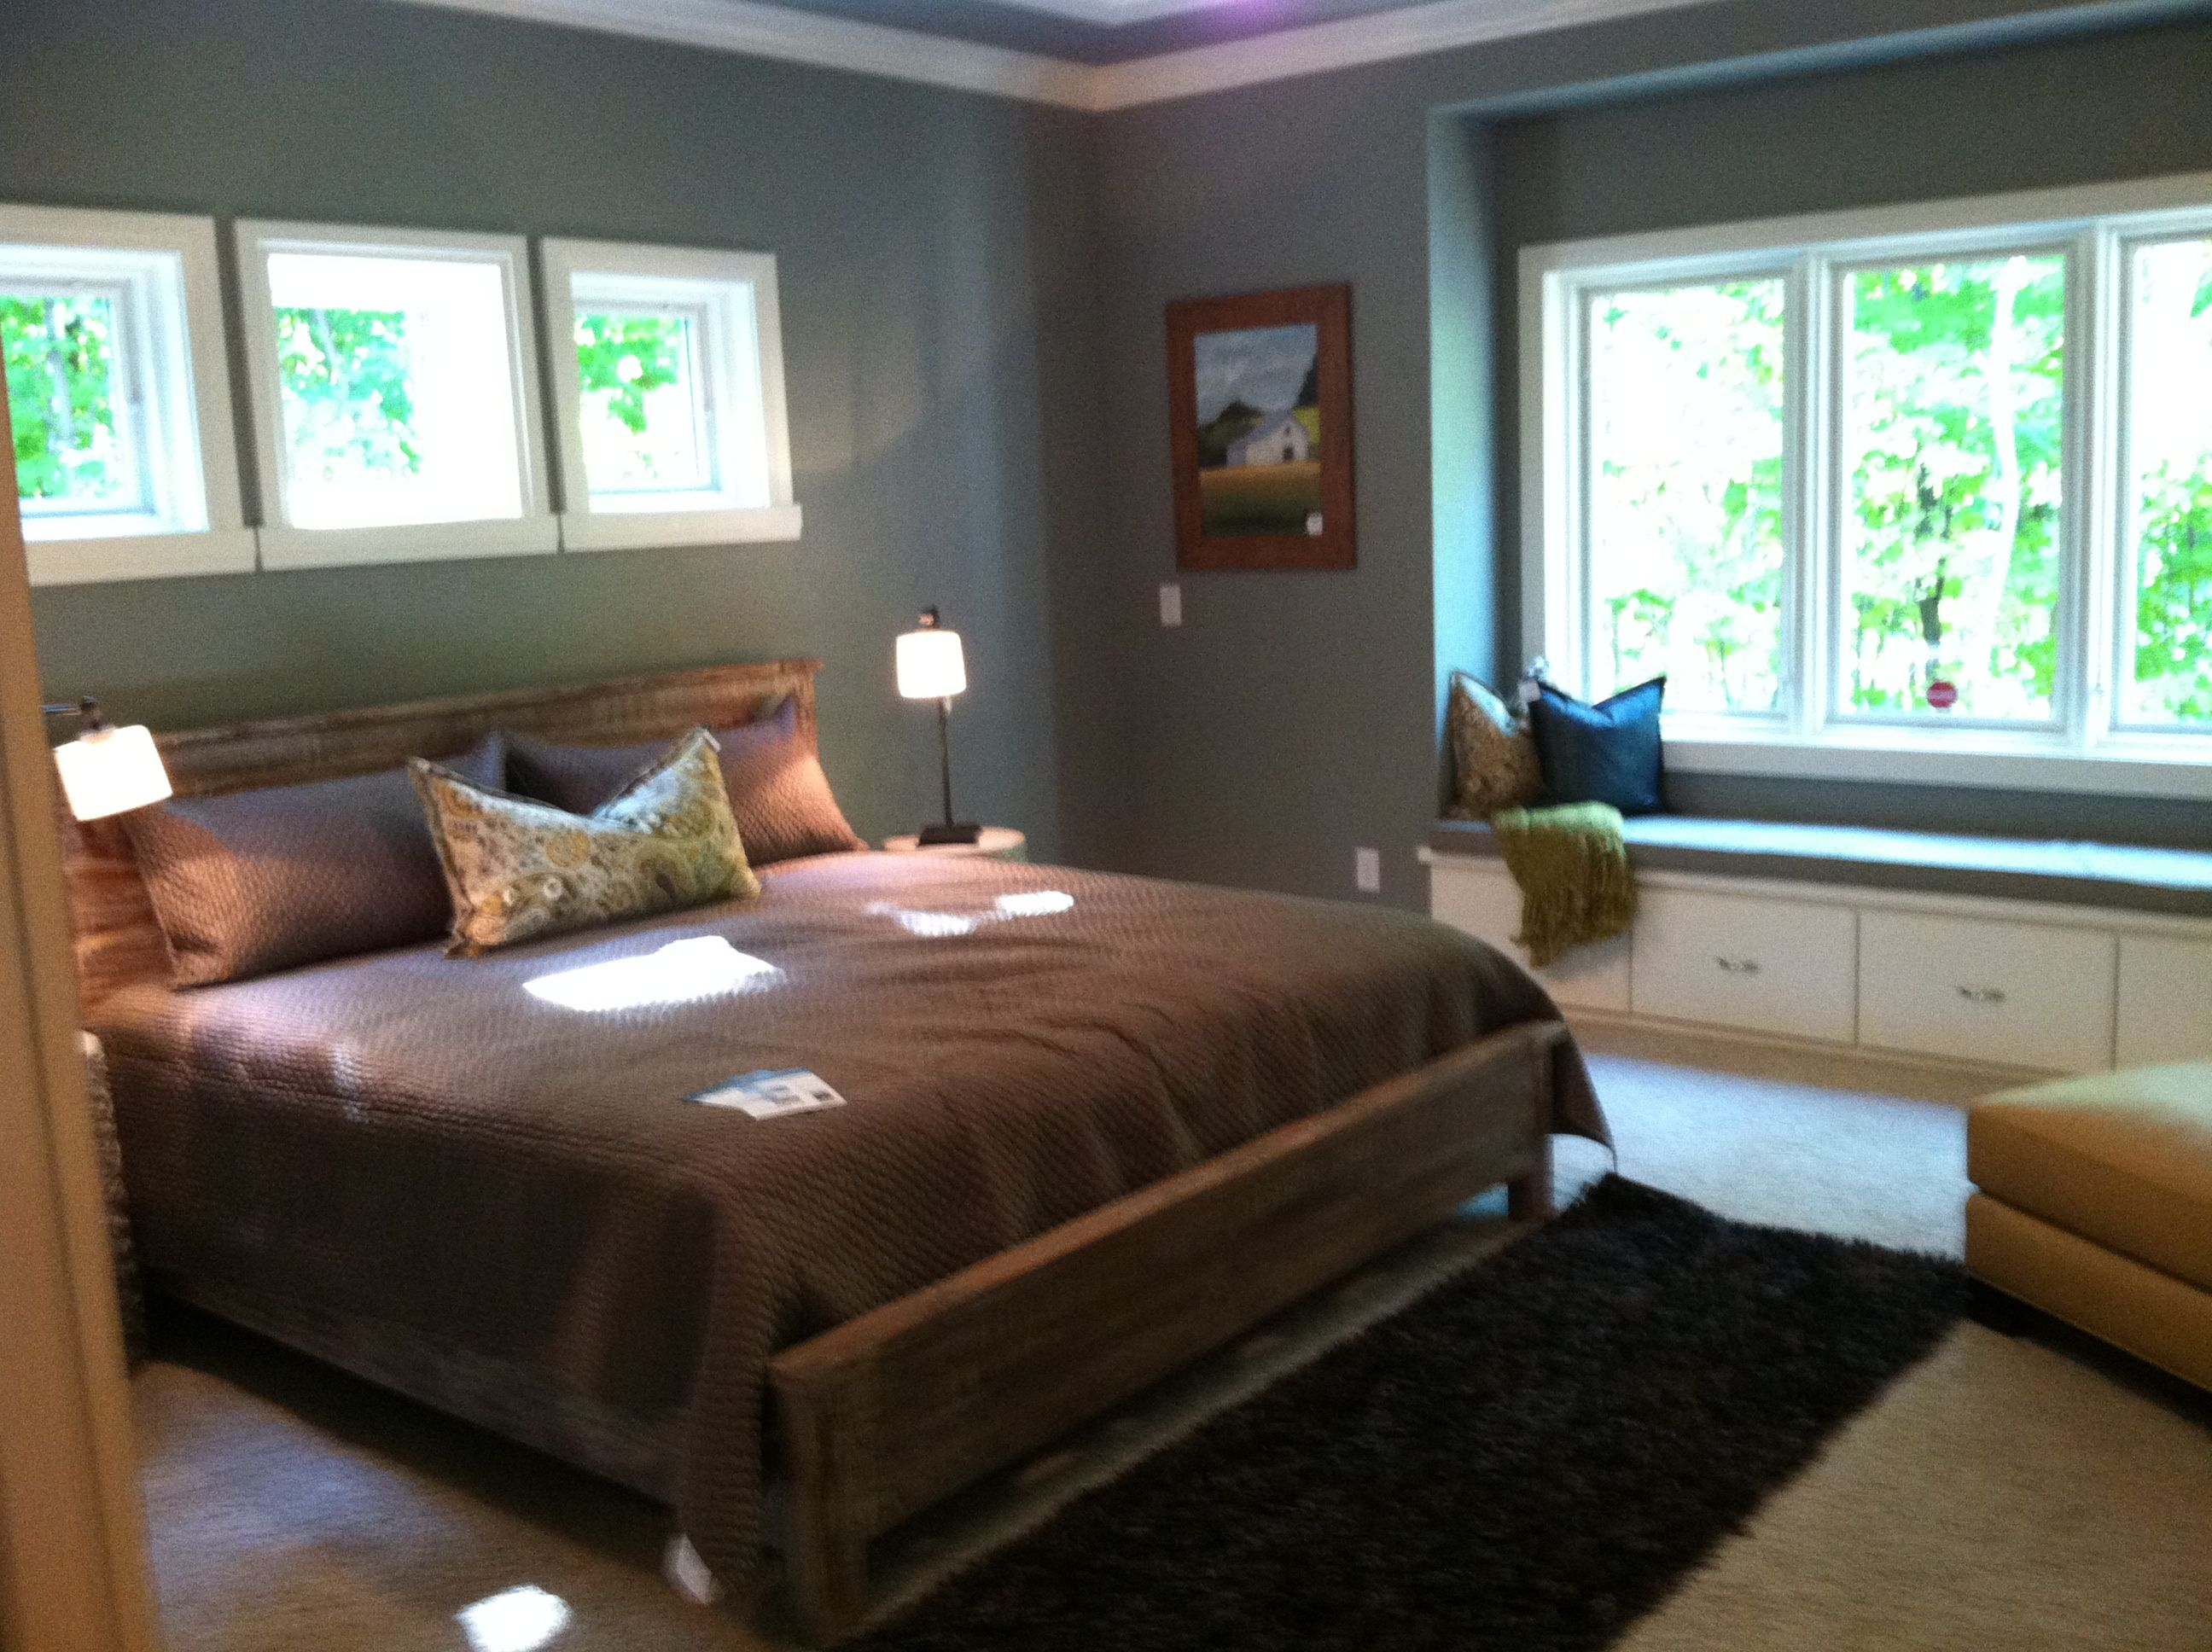 Bedroom ideas window behind bed  bedroom windows option for small room needing light above bed